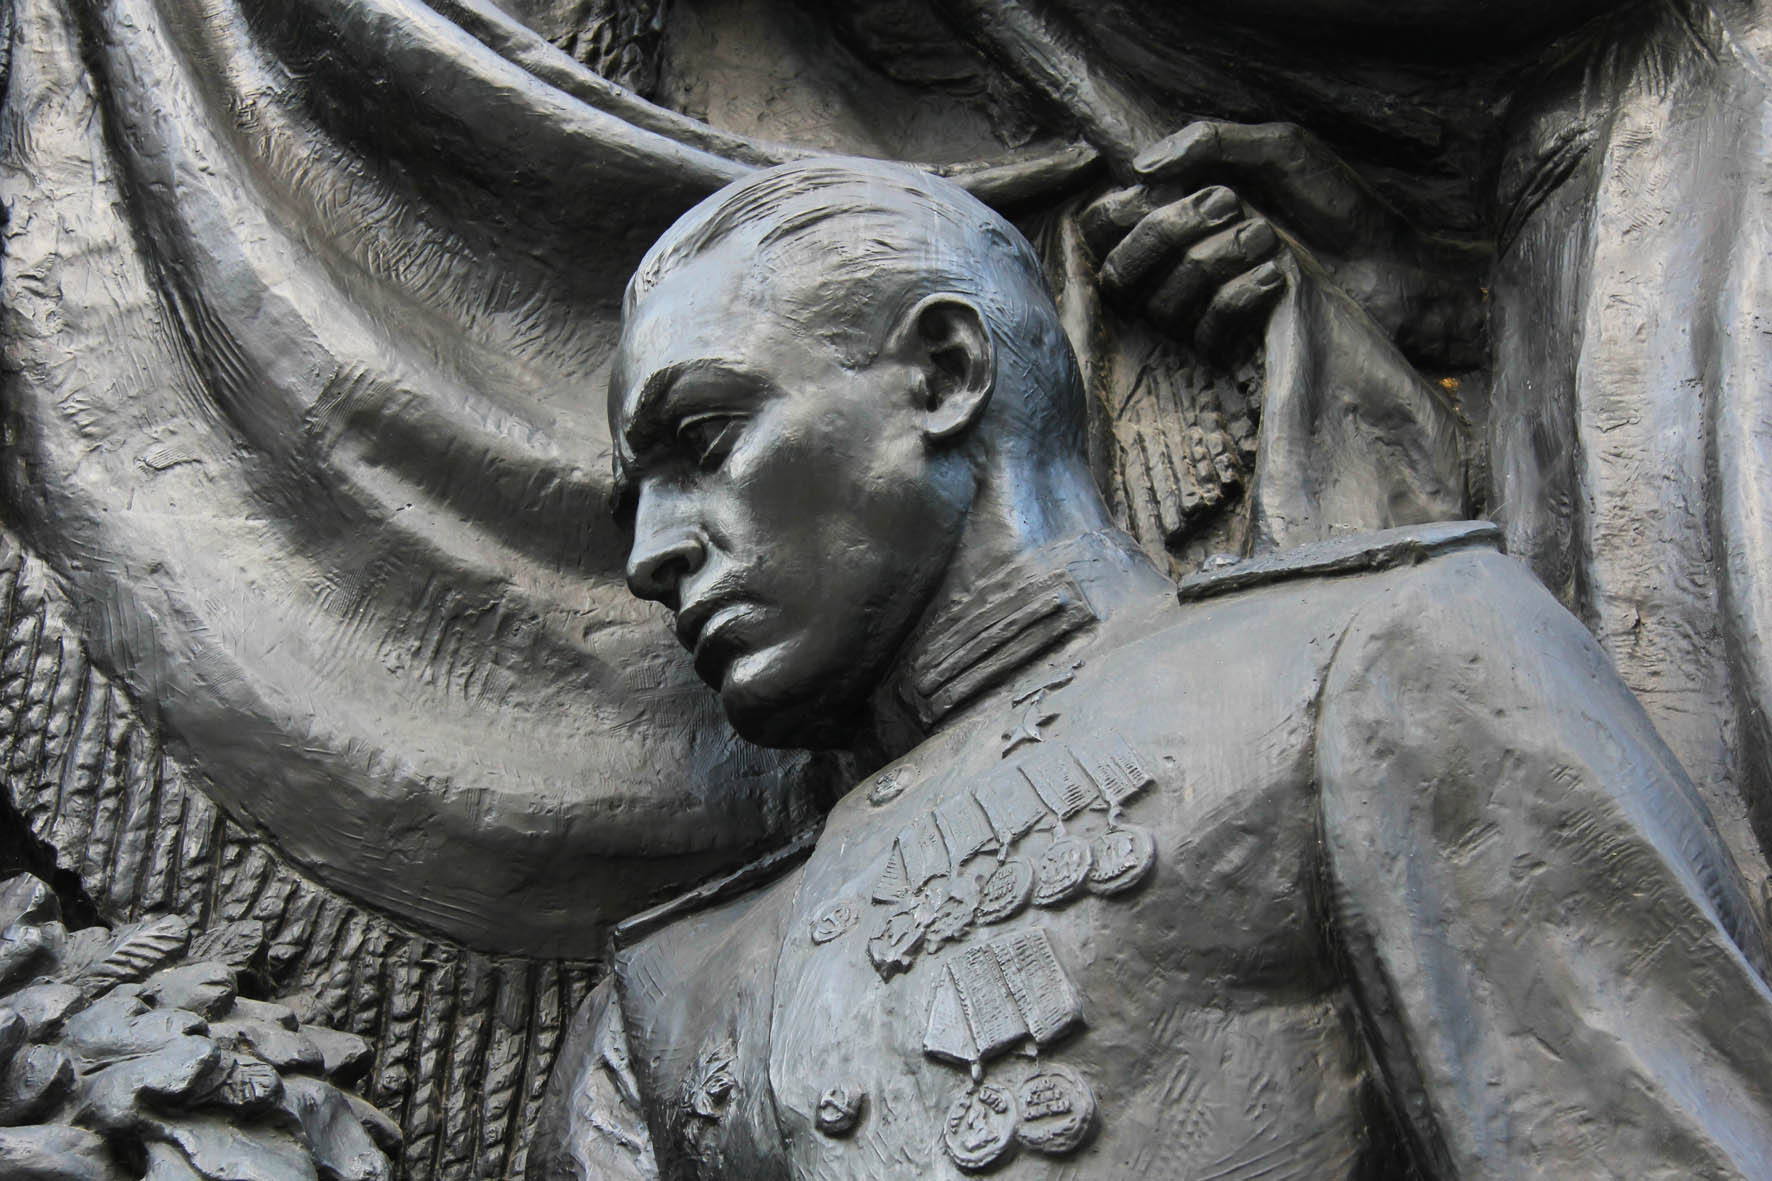 Bronze Relief of Soldier at Soviet Memorial in Schönholzer Heide in Berlin